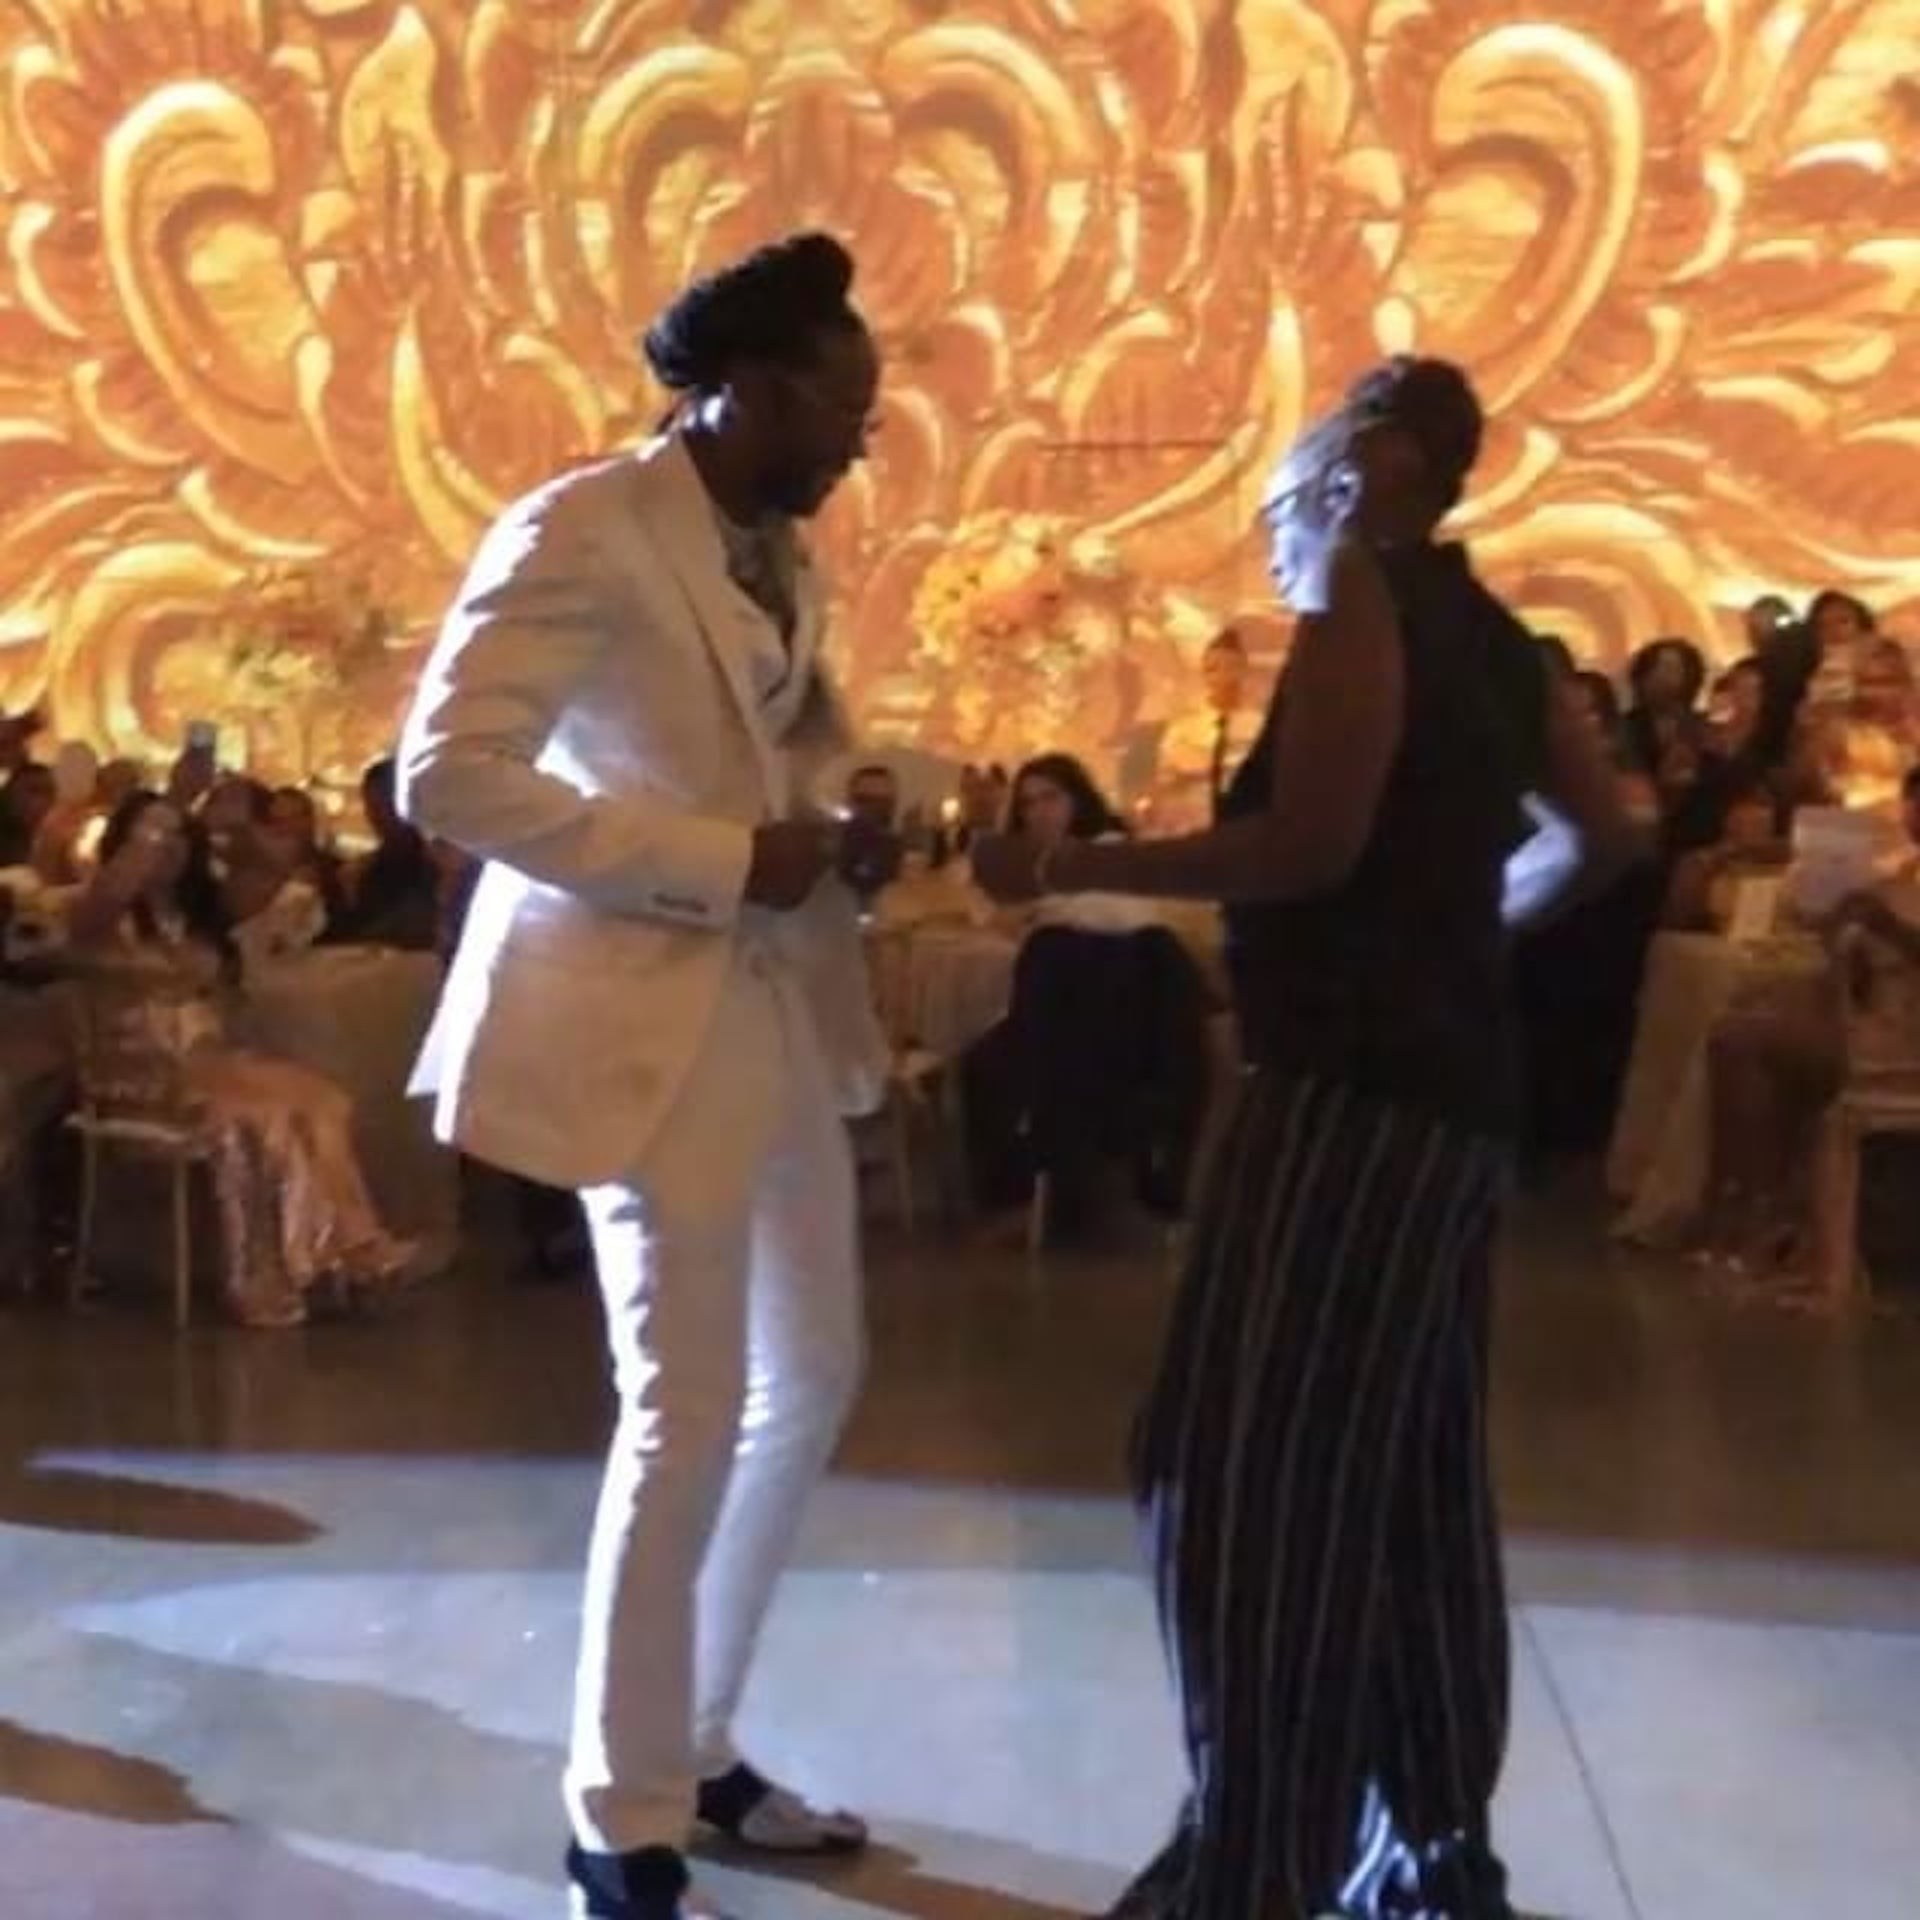 Mother Son Wedding Dance.2 Chainz Mother Son Dance At His Wedding August 2018 Popsugar